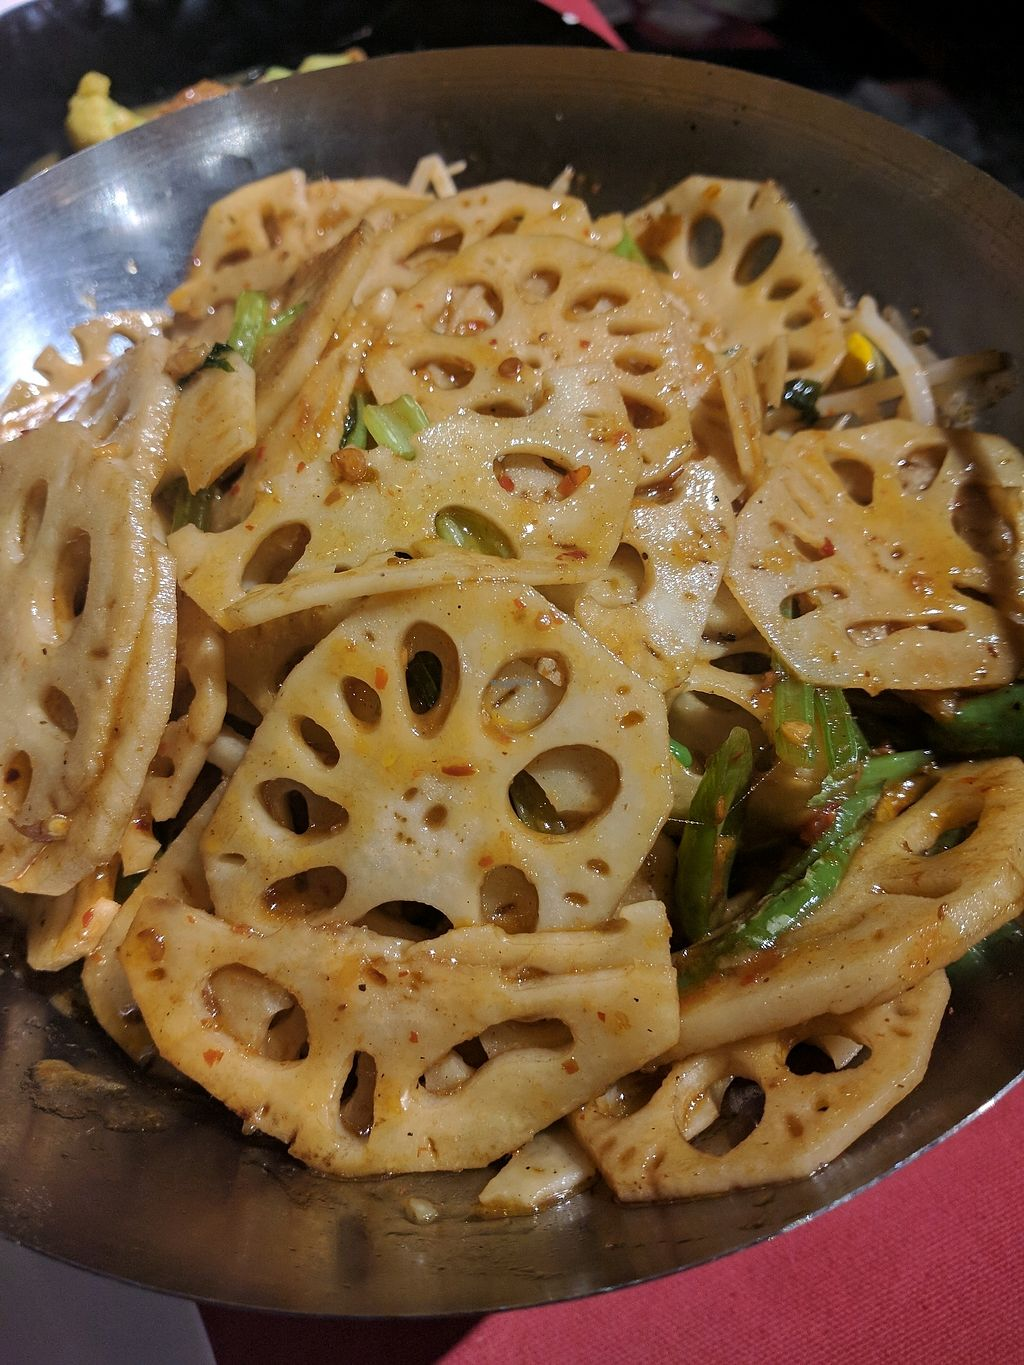 """Photo of Na Di Vegetarian  by <a href=""""/members/profile/VeganSoapDude"""">VeganSoapDude</a> <br/>Lotus root <br/> October 10, 2017  - <a href='/contact/abuse/image/18314/313841'>Report</a>"""